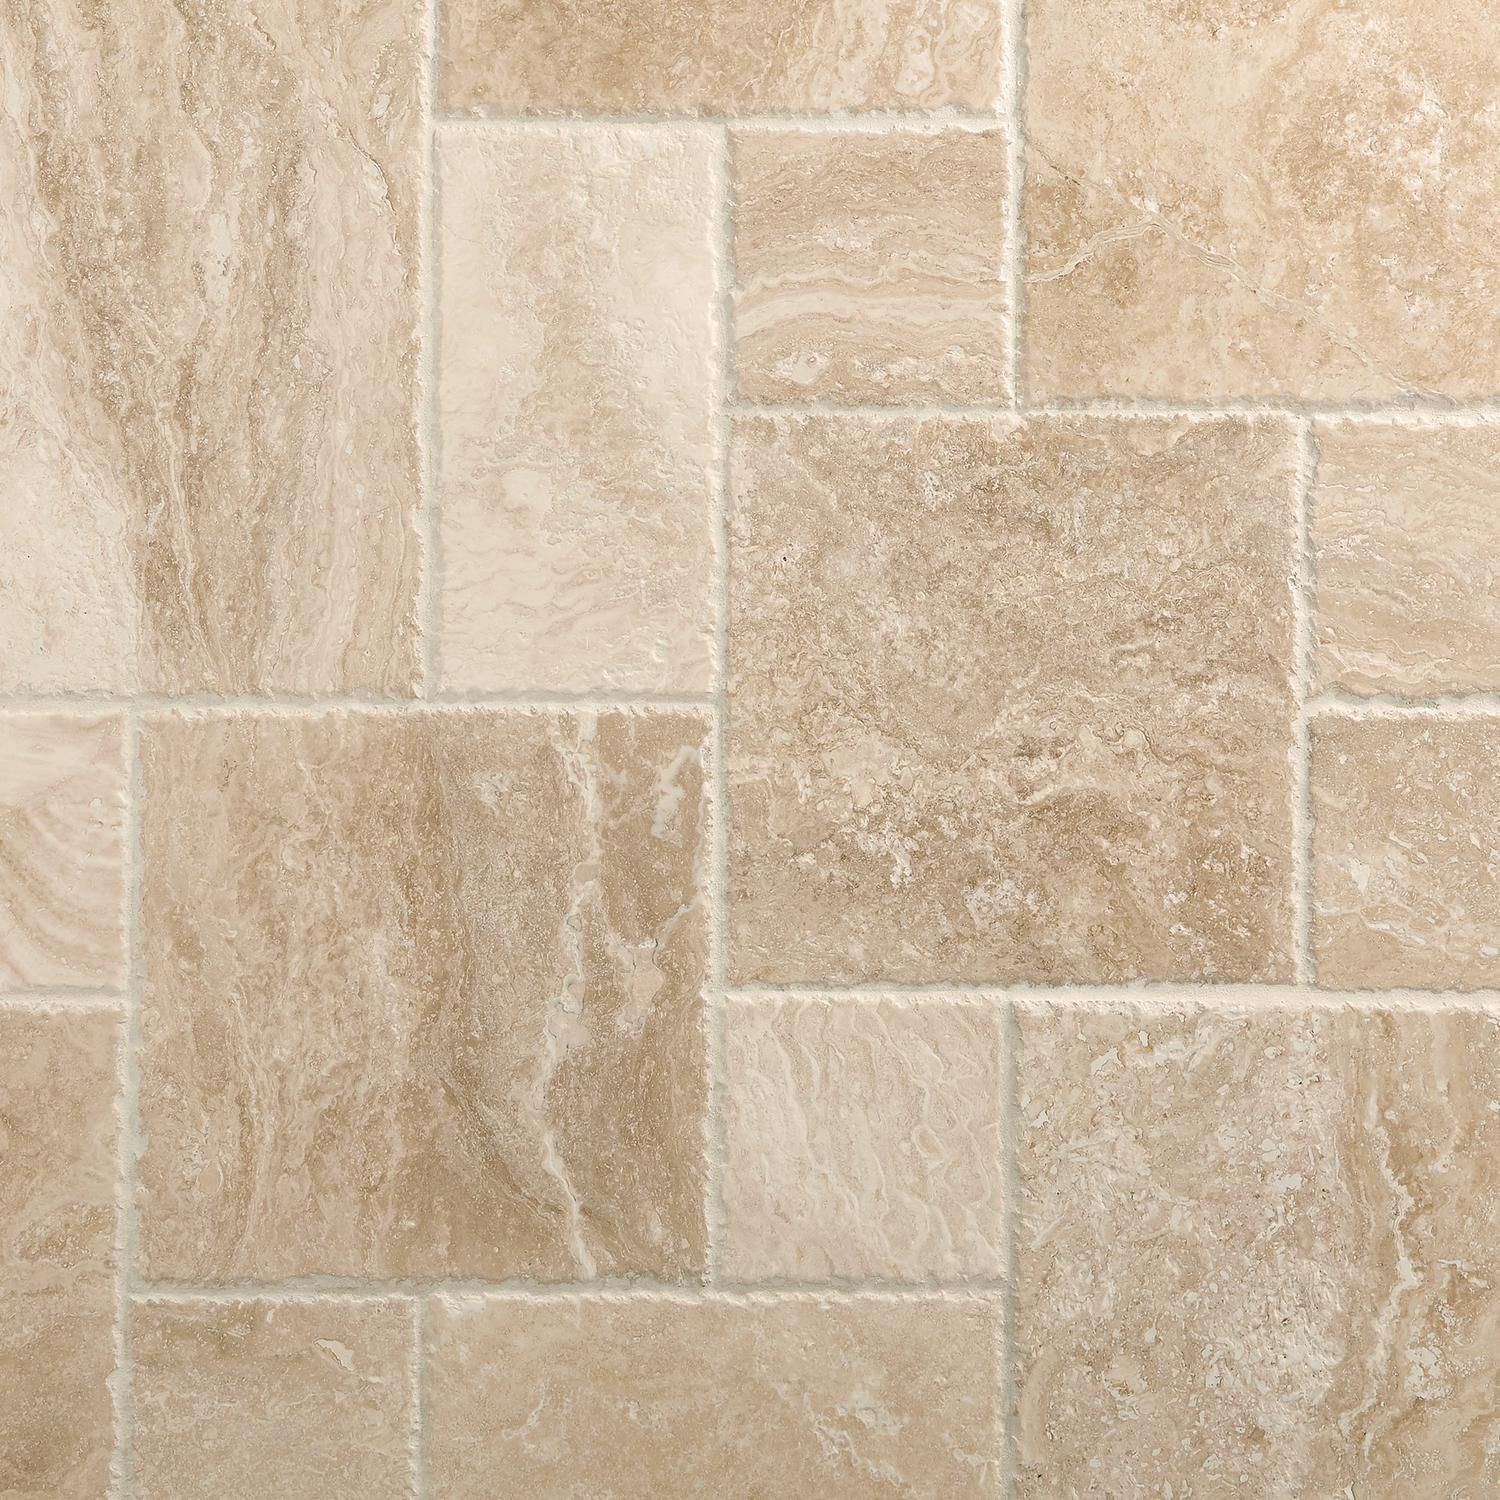 Cascade Cream Brushed Chiseled Travertine Tile Travertine Tile